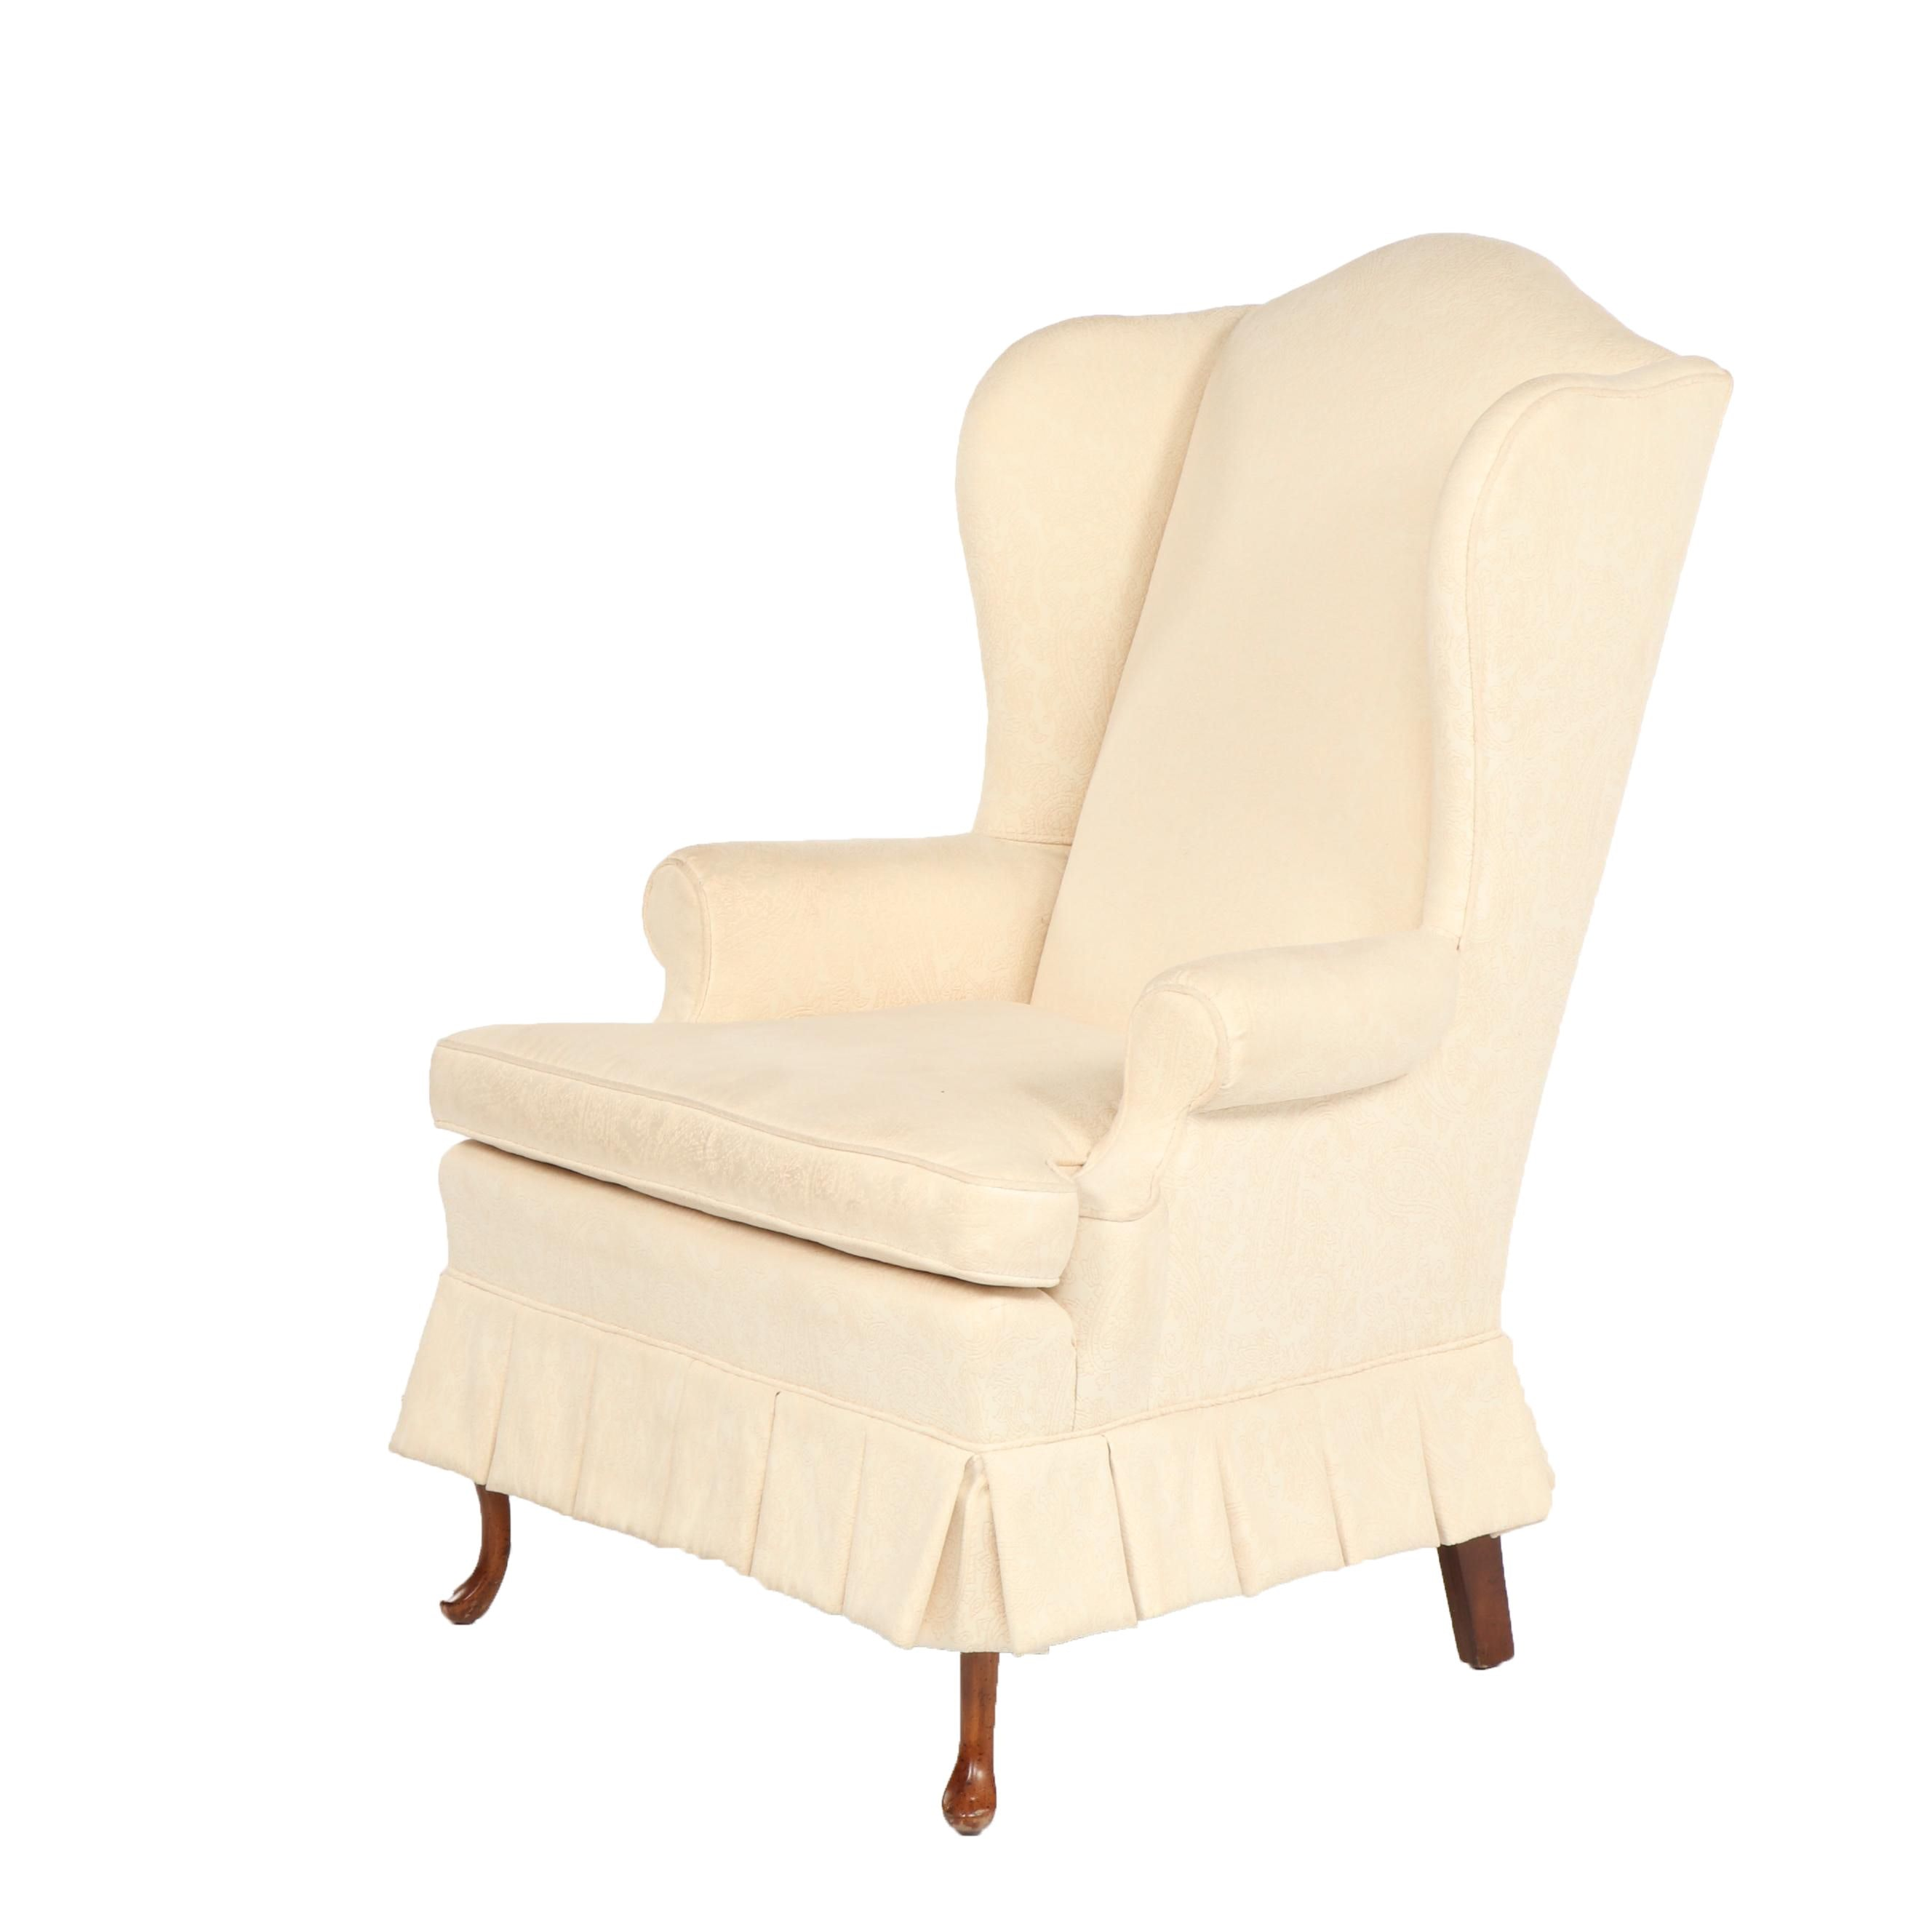 Upholstered Wingback Armchair, Late 20th Century